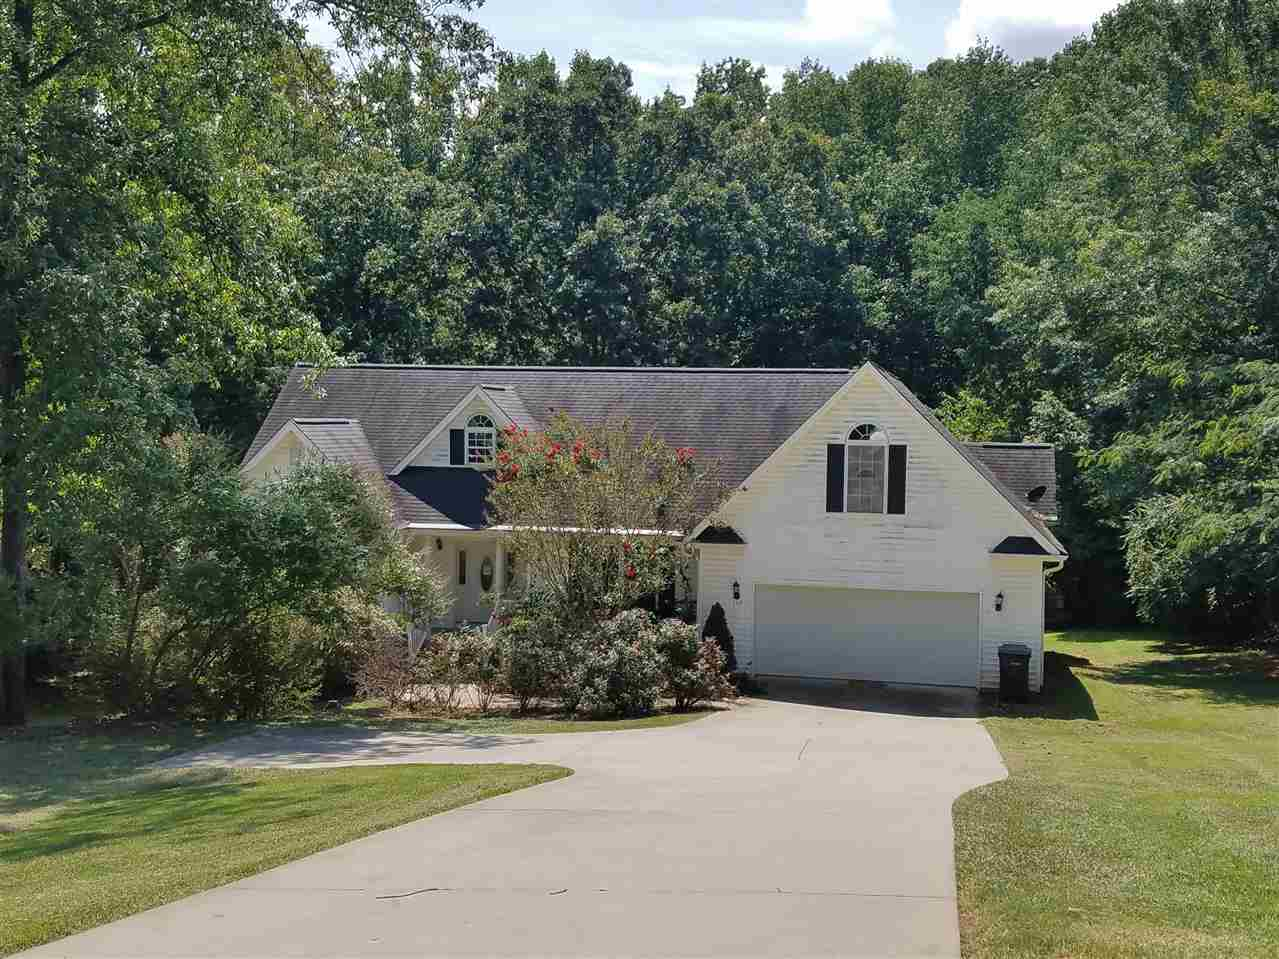 110 Indian Trail Rd, Seneca, SC 29672